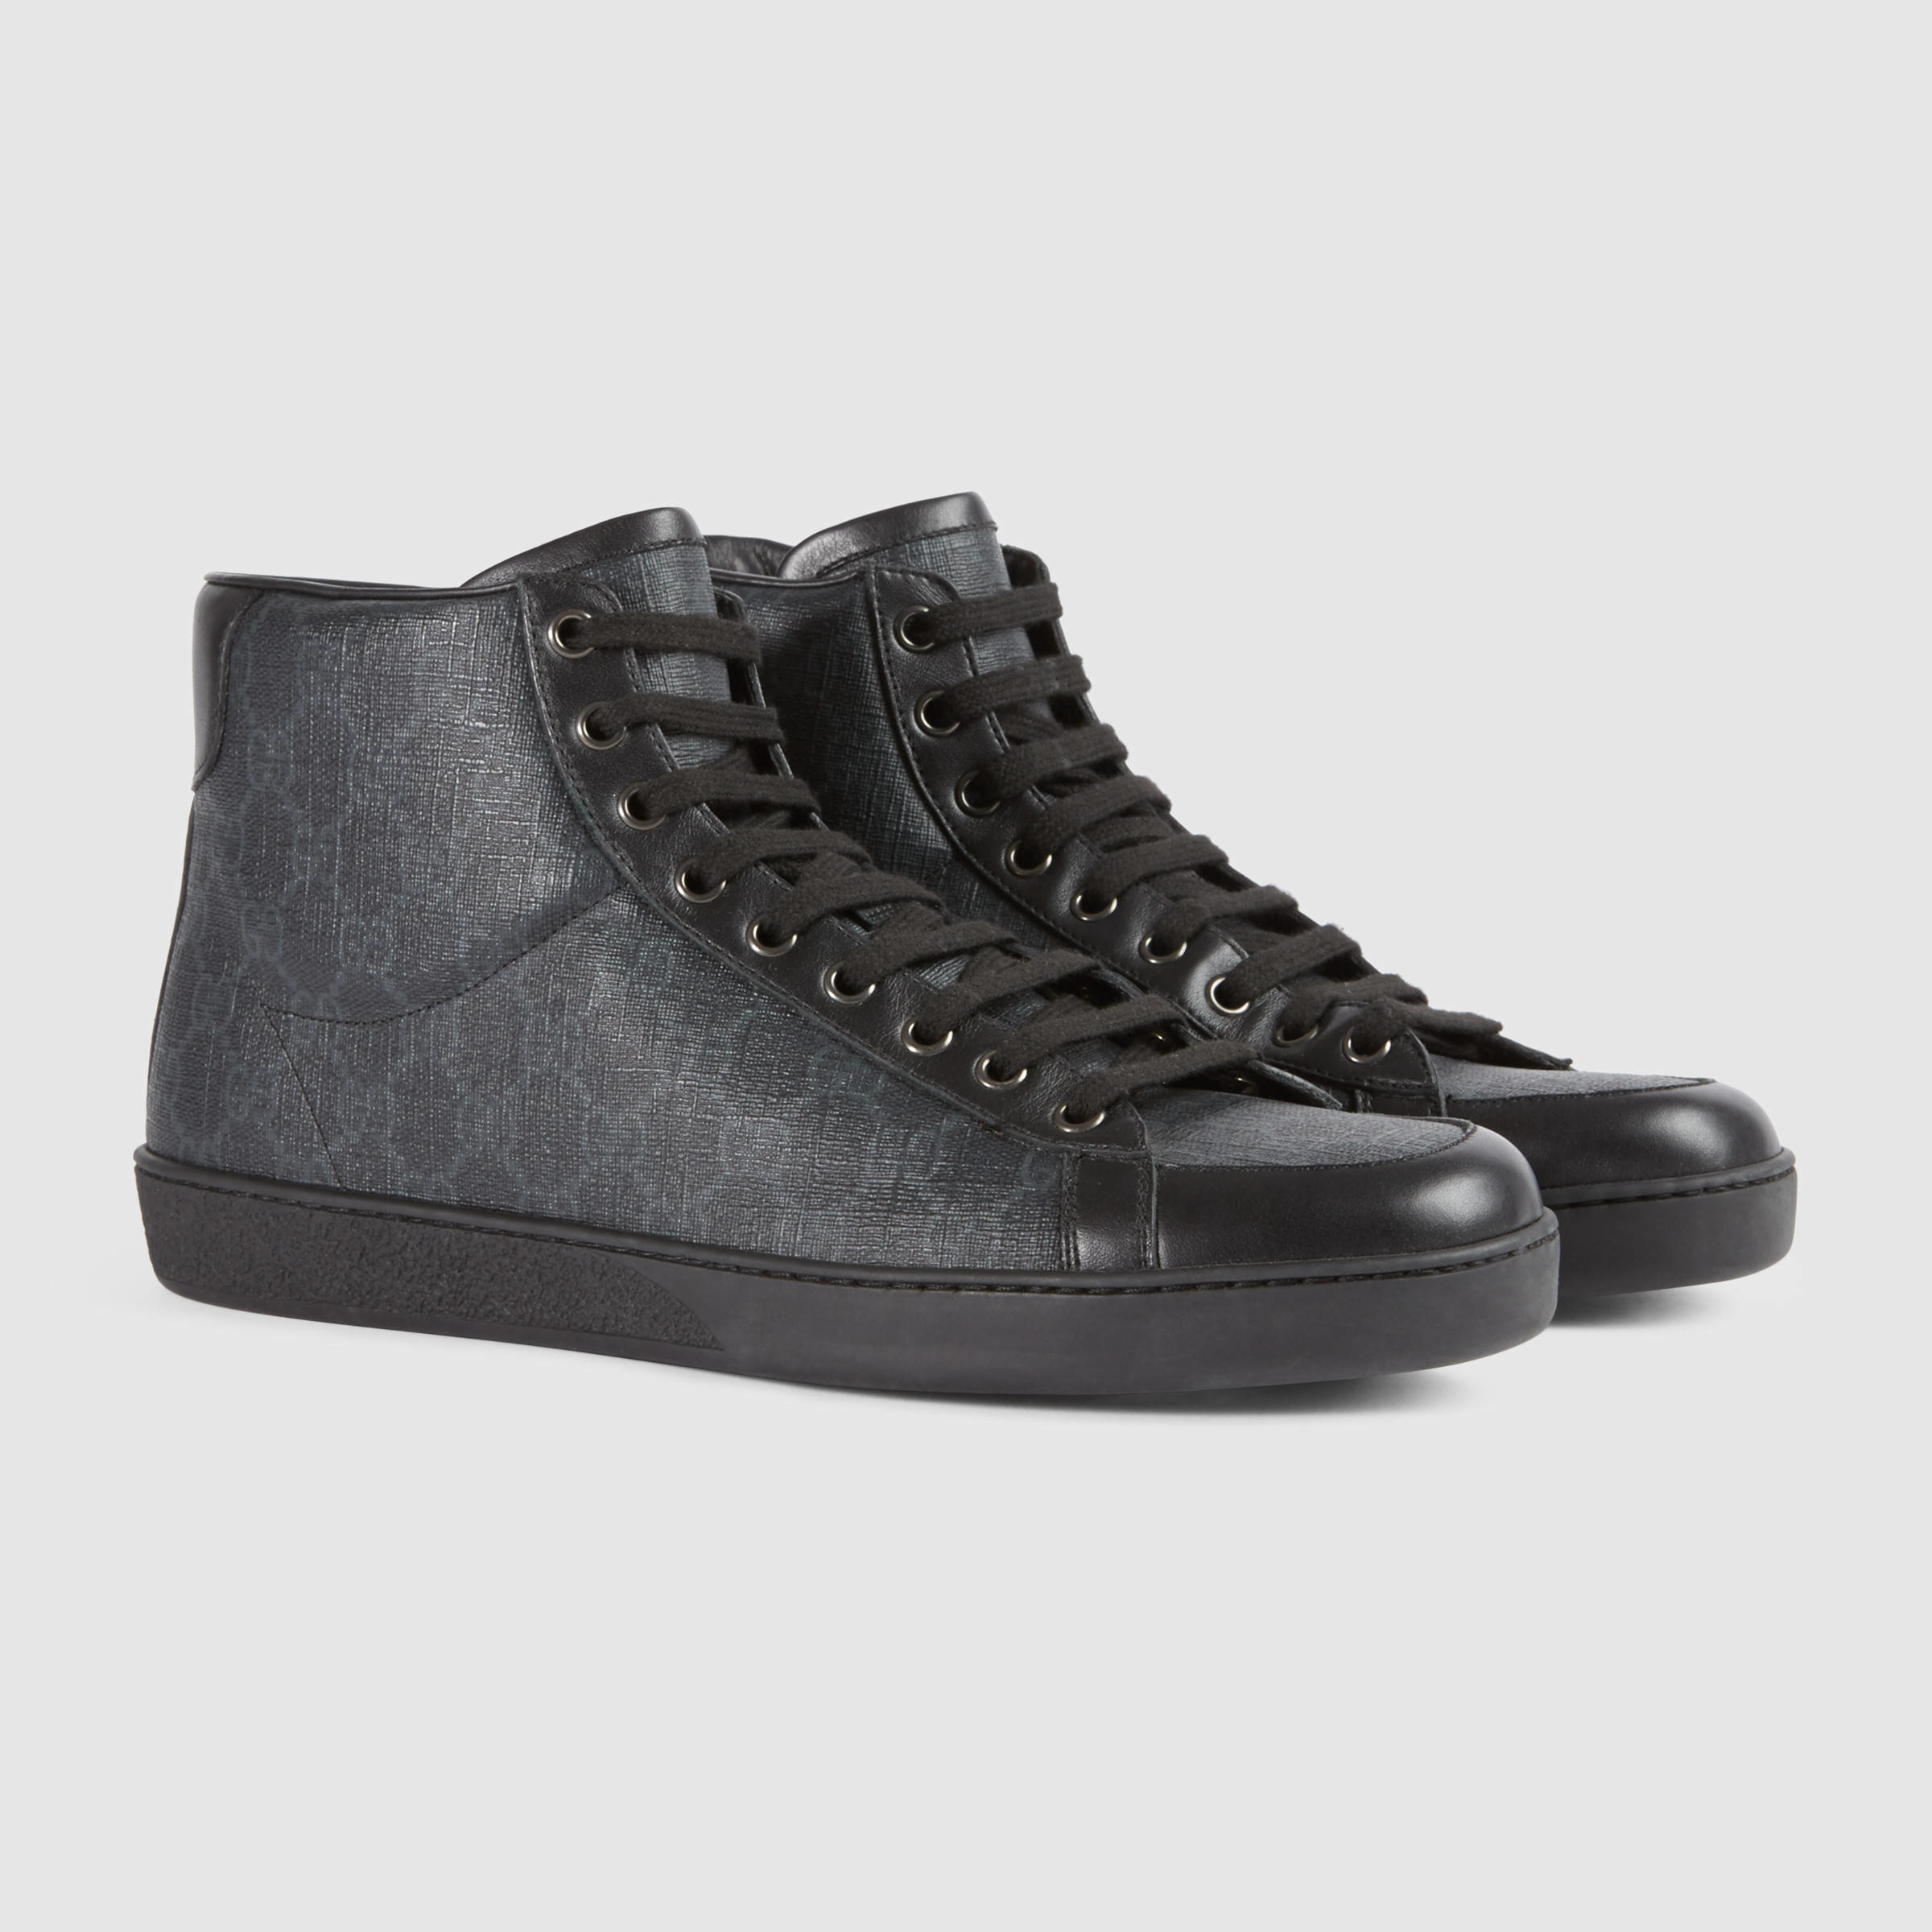 ad80261b5ba Lyst - Gucci Gg Supreme High-top Sneaker in Gray for Men